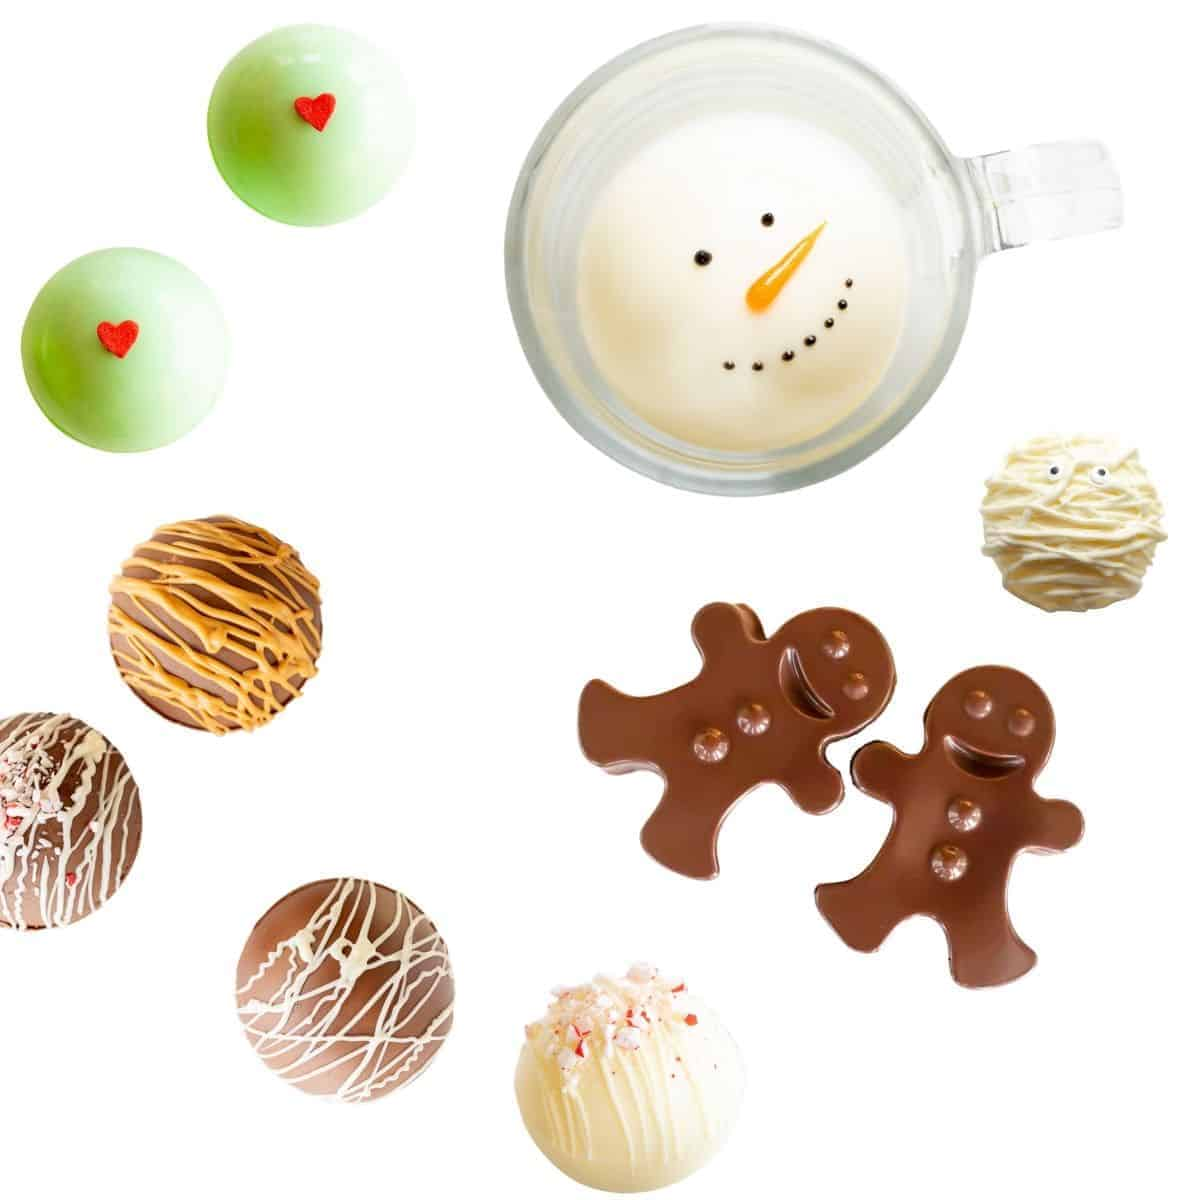 assortment of hot chocolate bombs displayed on white background